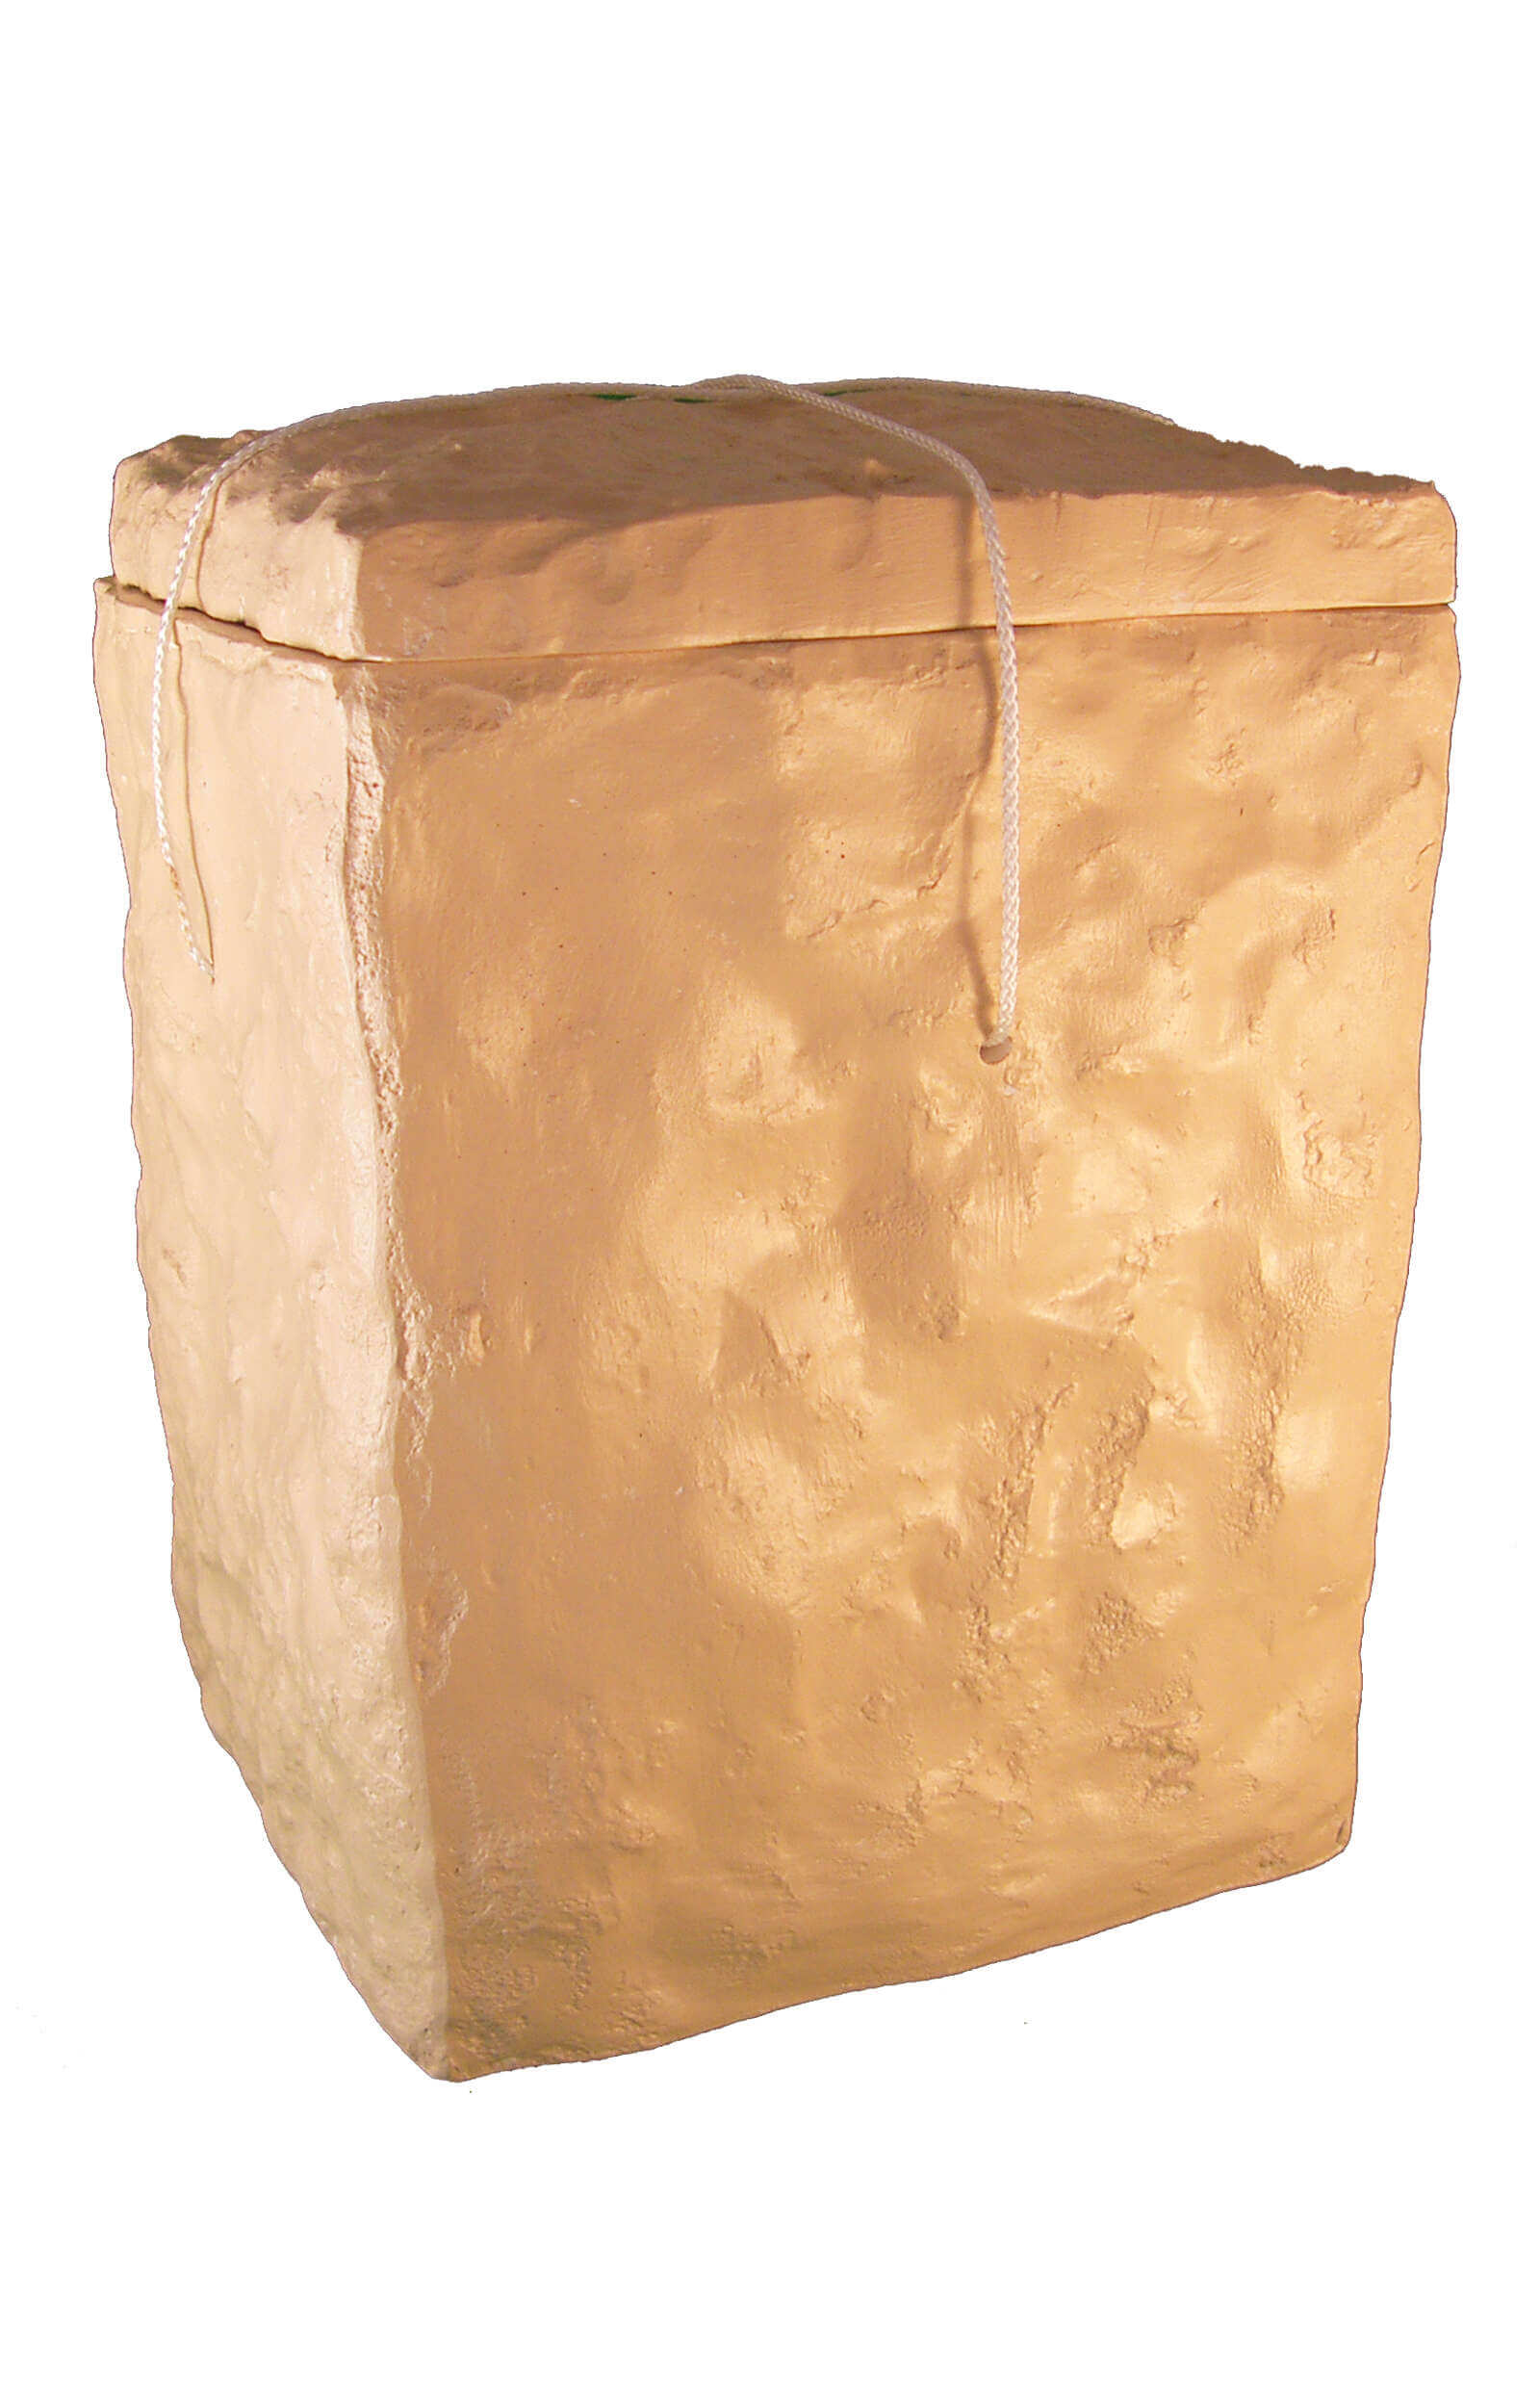 en SS7013 sea urn stone of eternity cream white beige funeral urns for human ashes on sale